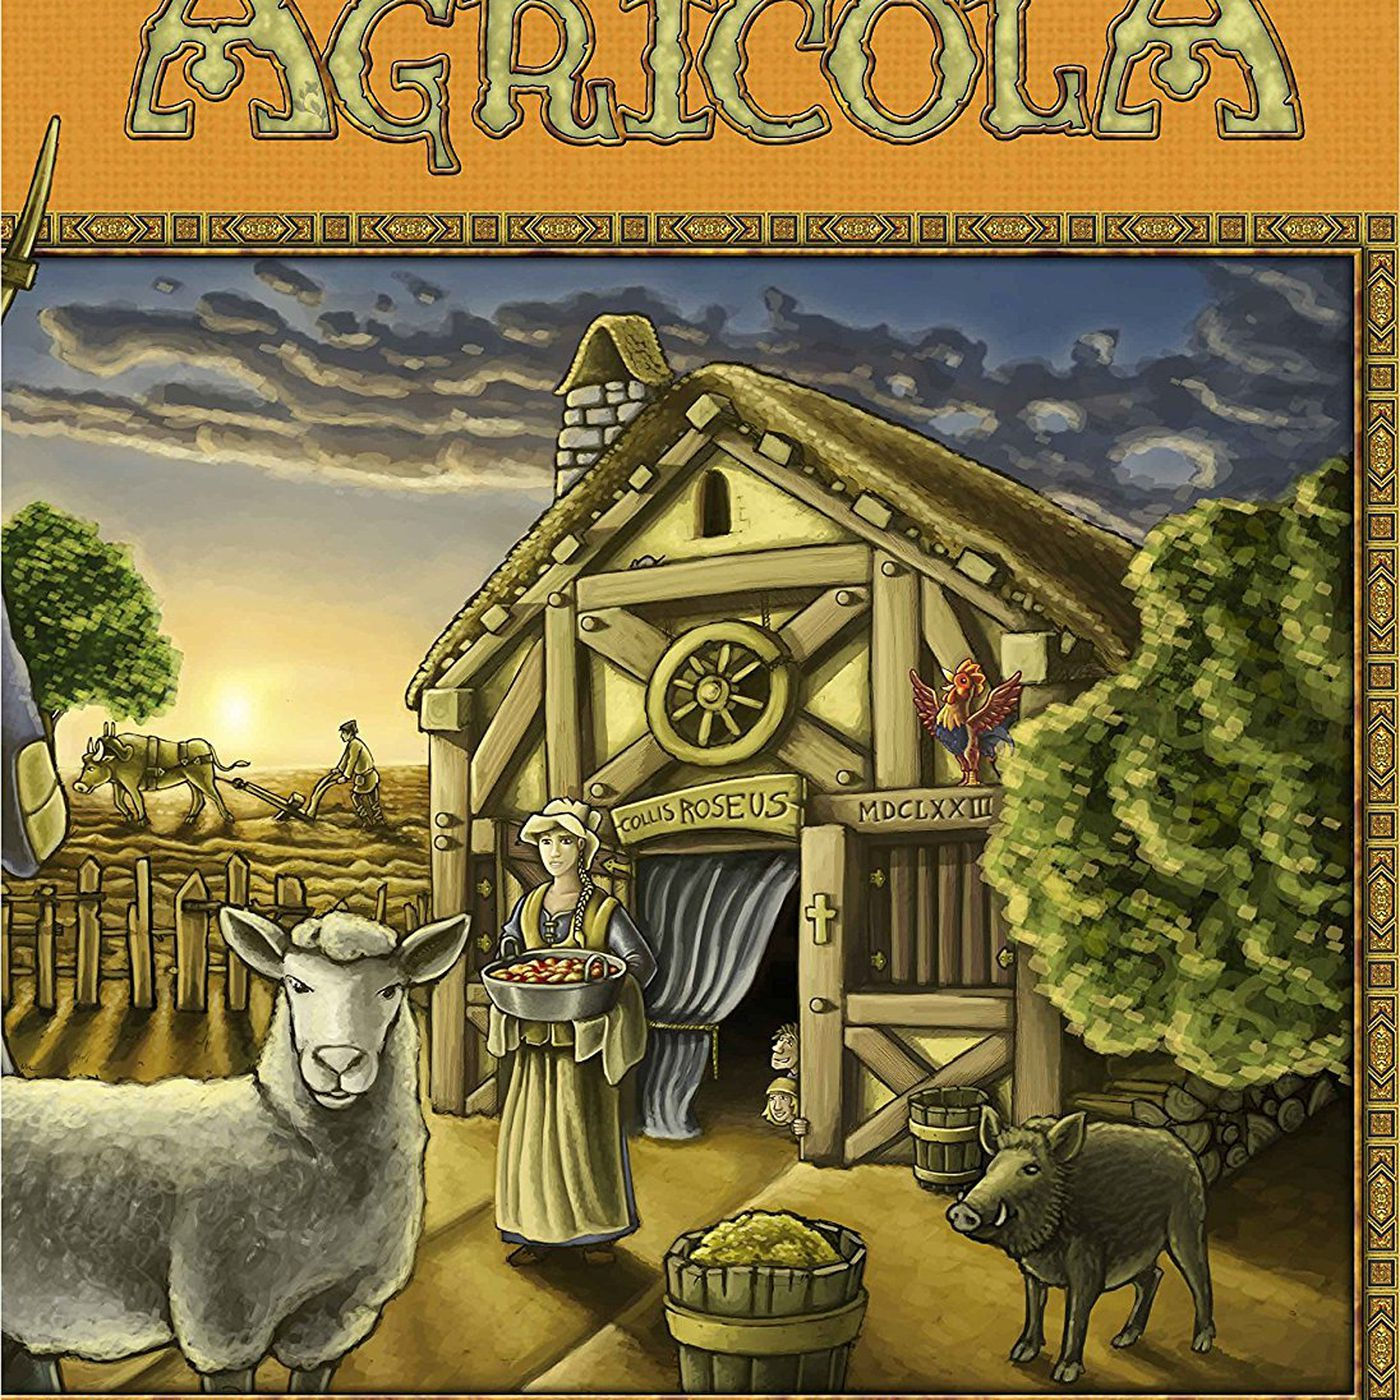 Best game for people who miss Harvest Moon: Agricola - Vox